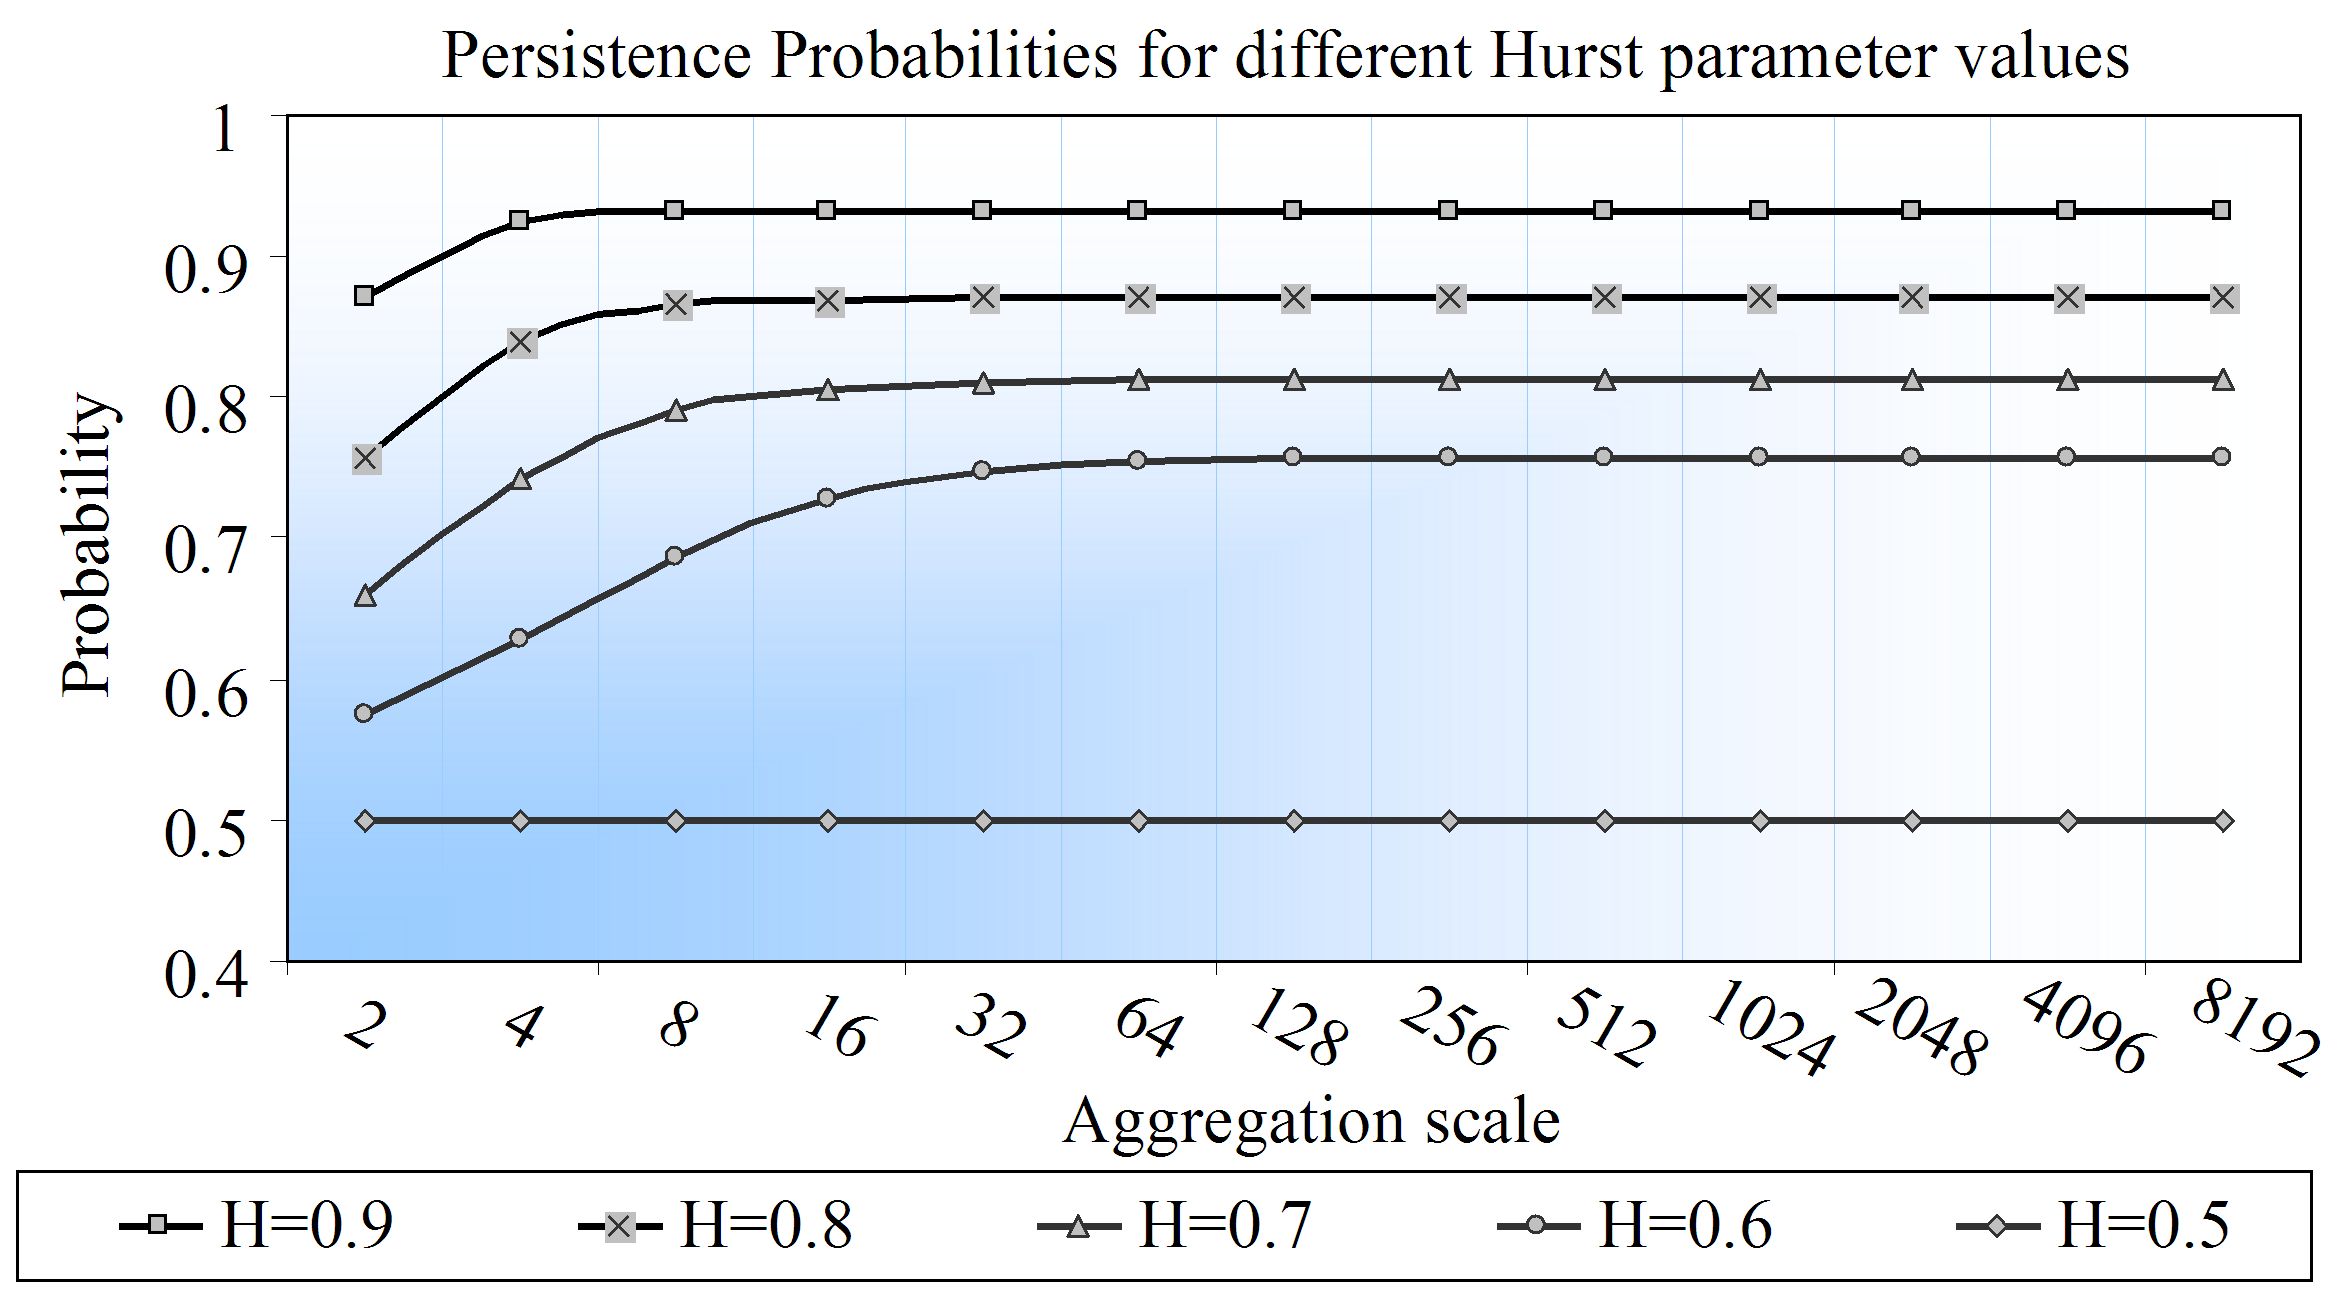 Figure 4.1: The values of the persistence probabilities for different Hurst parameter values. This values were obtained using the formulas described herein.